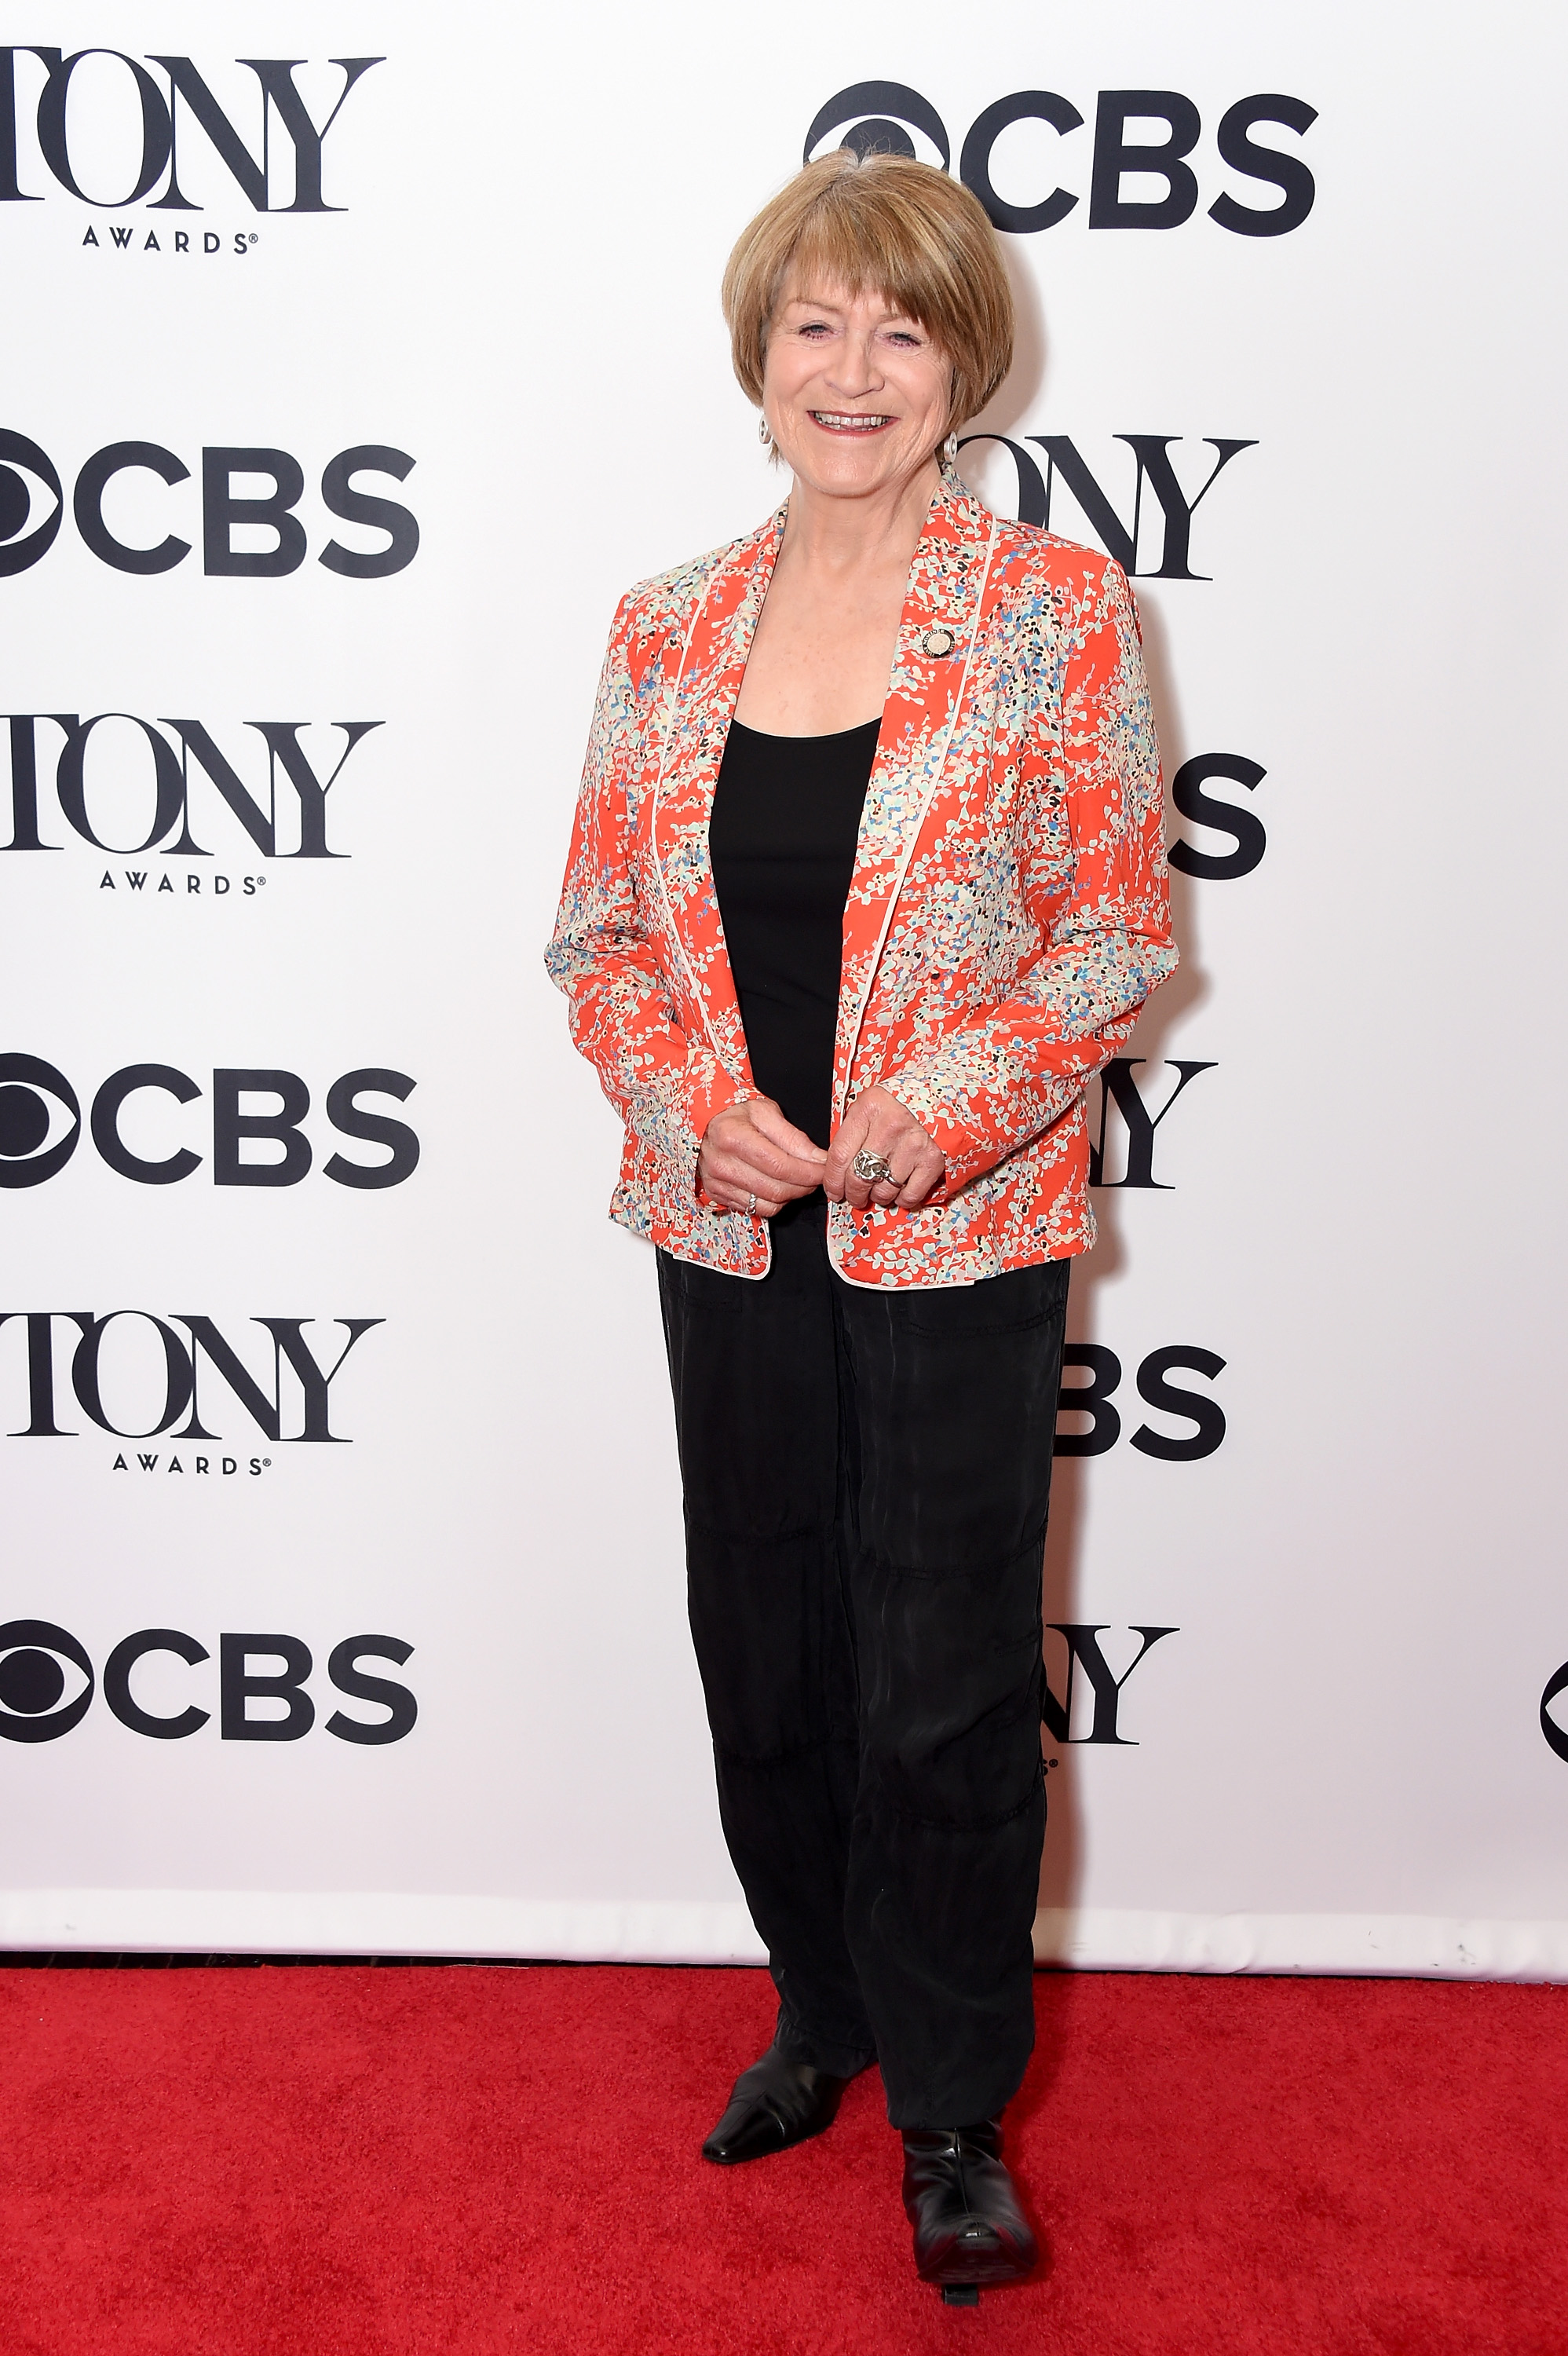 Susan Brown attends the 2018 Tony Awards Meet The Nominees Press Junket on May 2, 2018 in New York City.